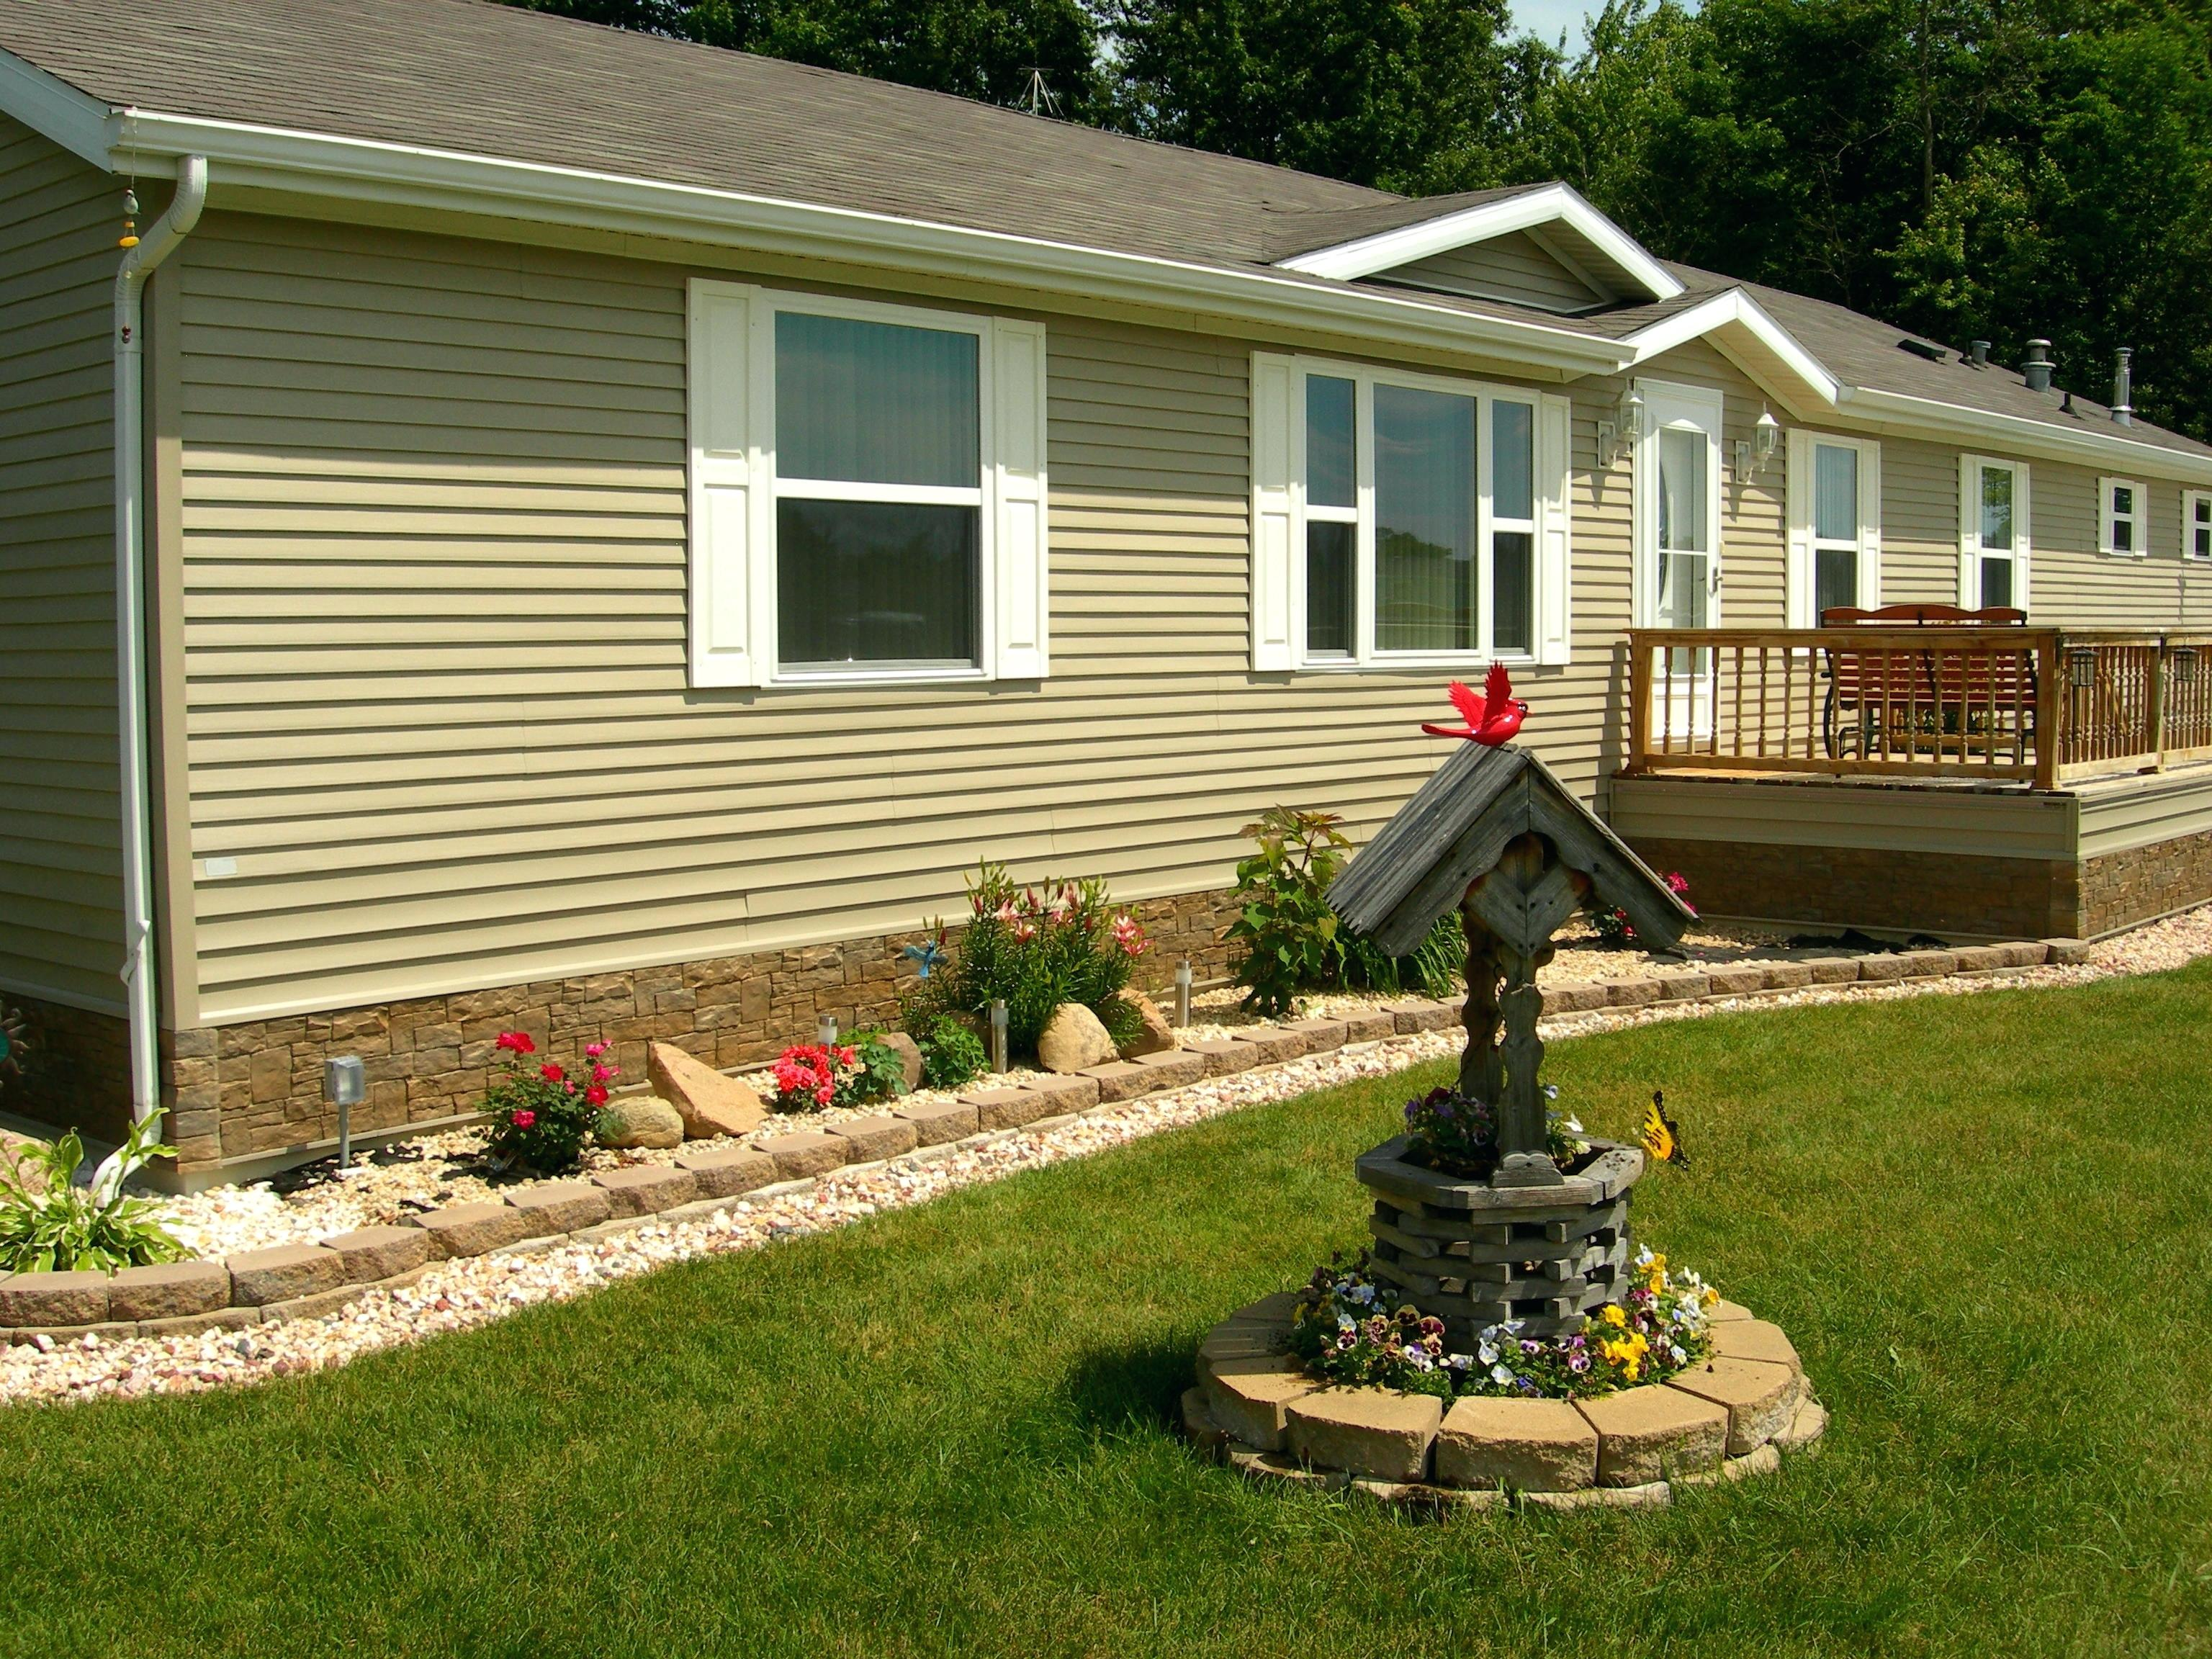 Mobile Home Plans with Porches | Covered Decks for Mobile Homes | Mobile Home Porches